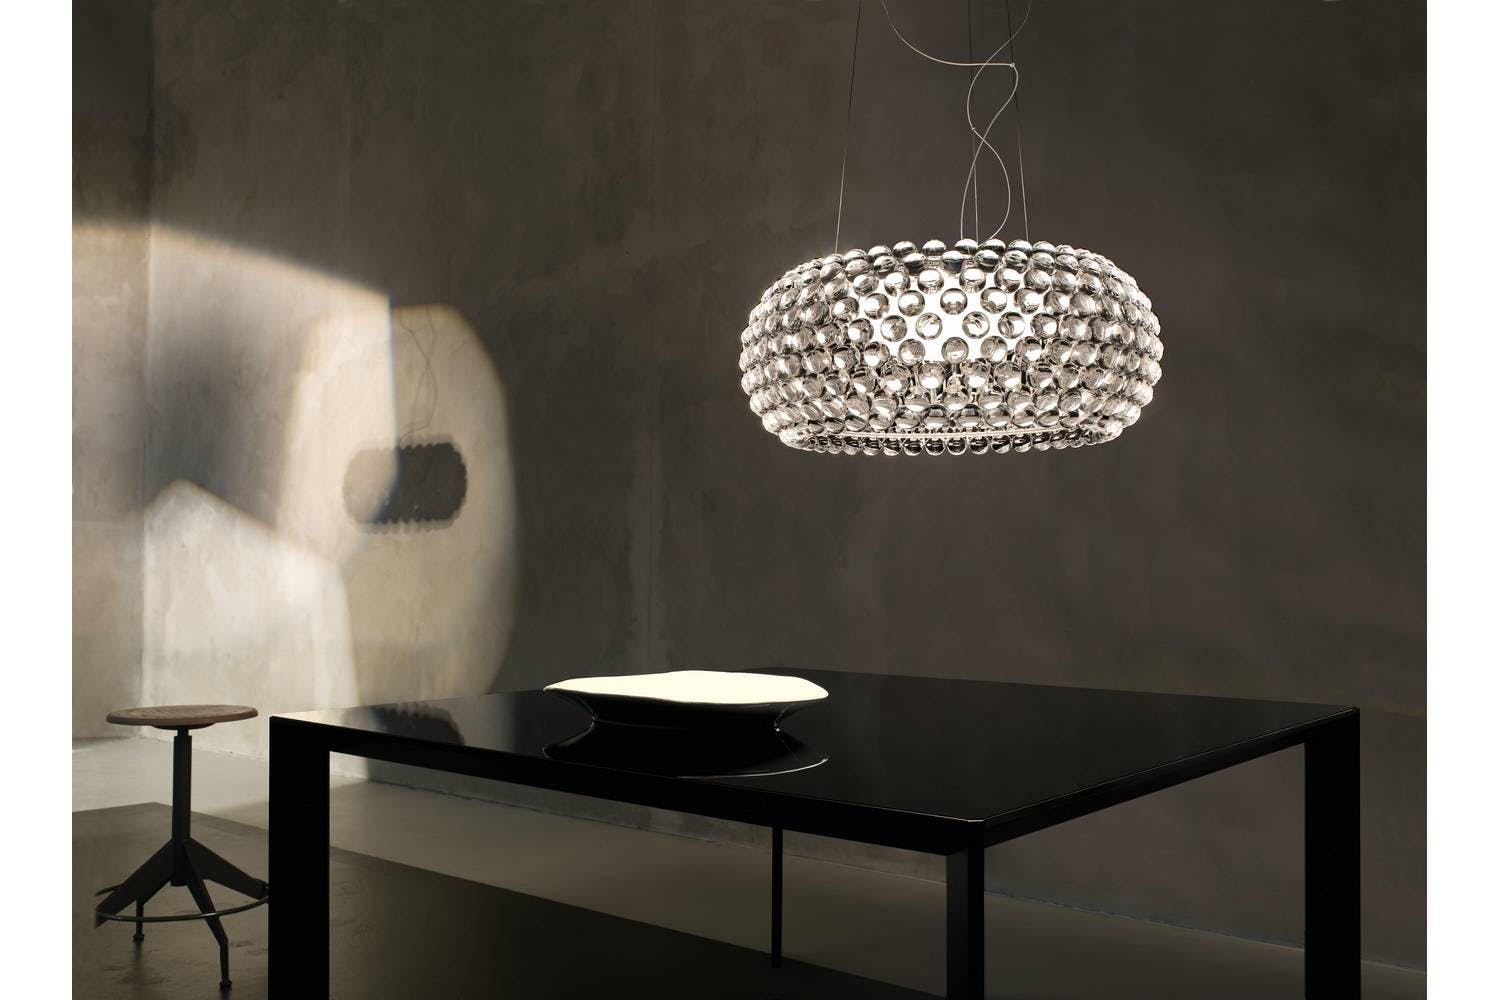 caboche grande suspension lamp by patricia urquiola eliana gerotto for foscarini space furniture. Black Bedroom Furniture Sets. Home Design Ideas